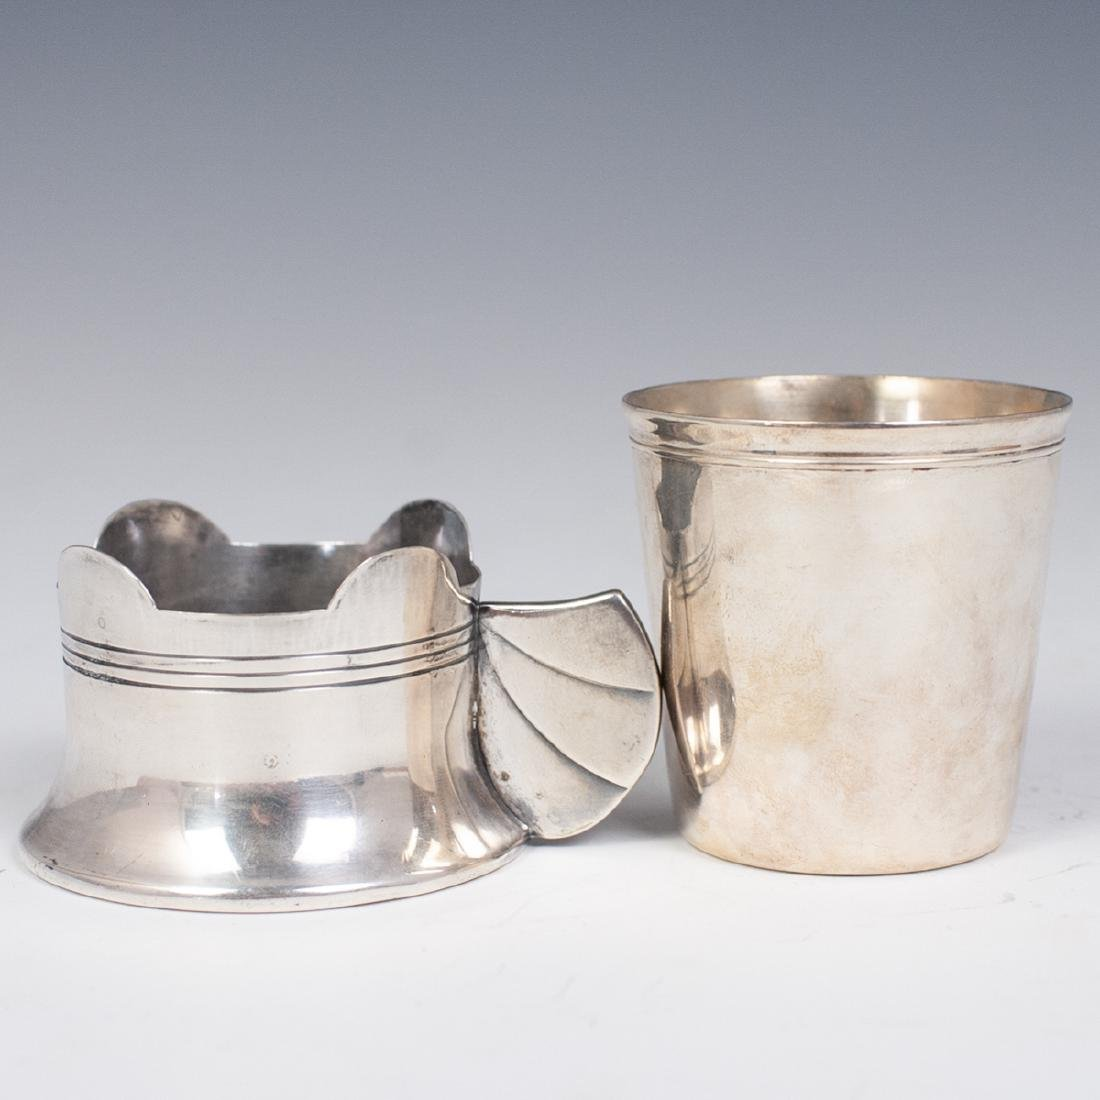 Christofle Silver Plated 2 Pc. Cup Set - 2